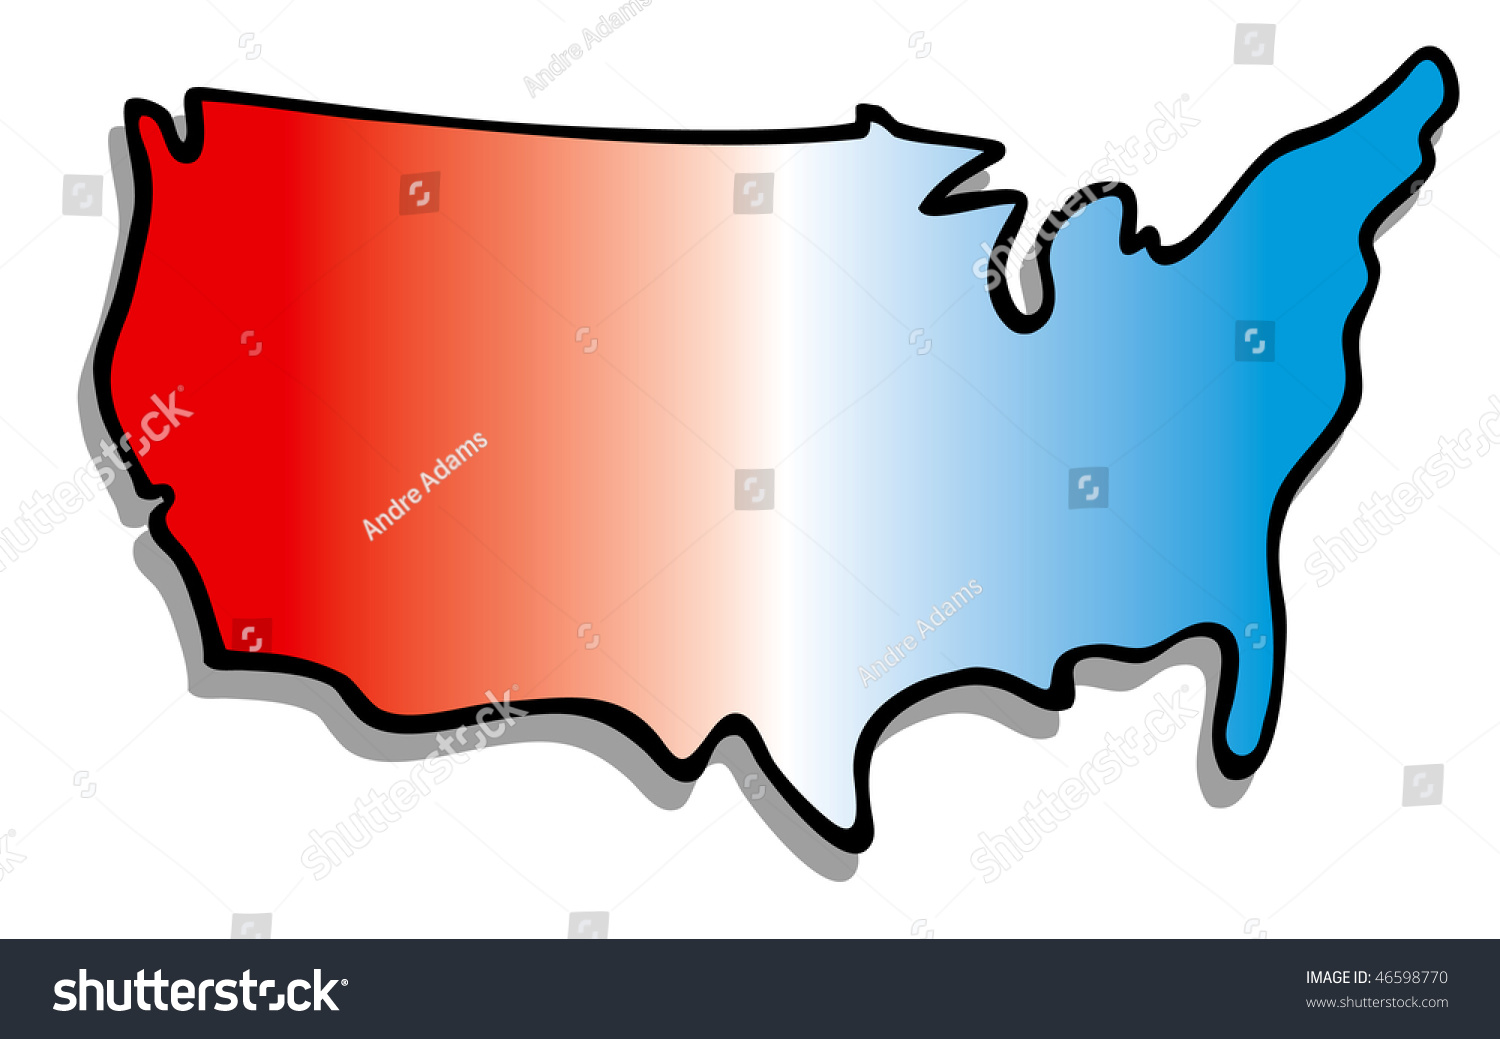 Cartoon Vector Ilration Map United States